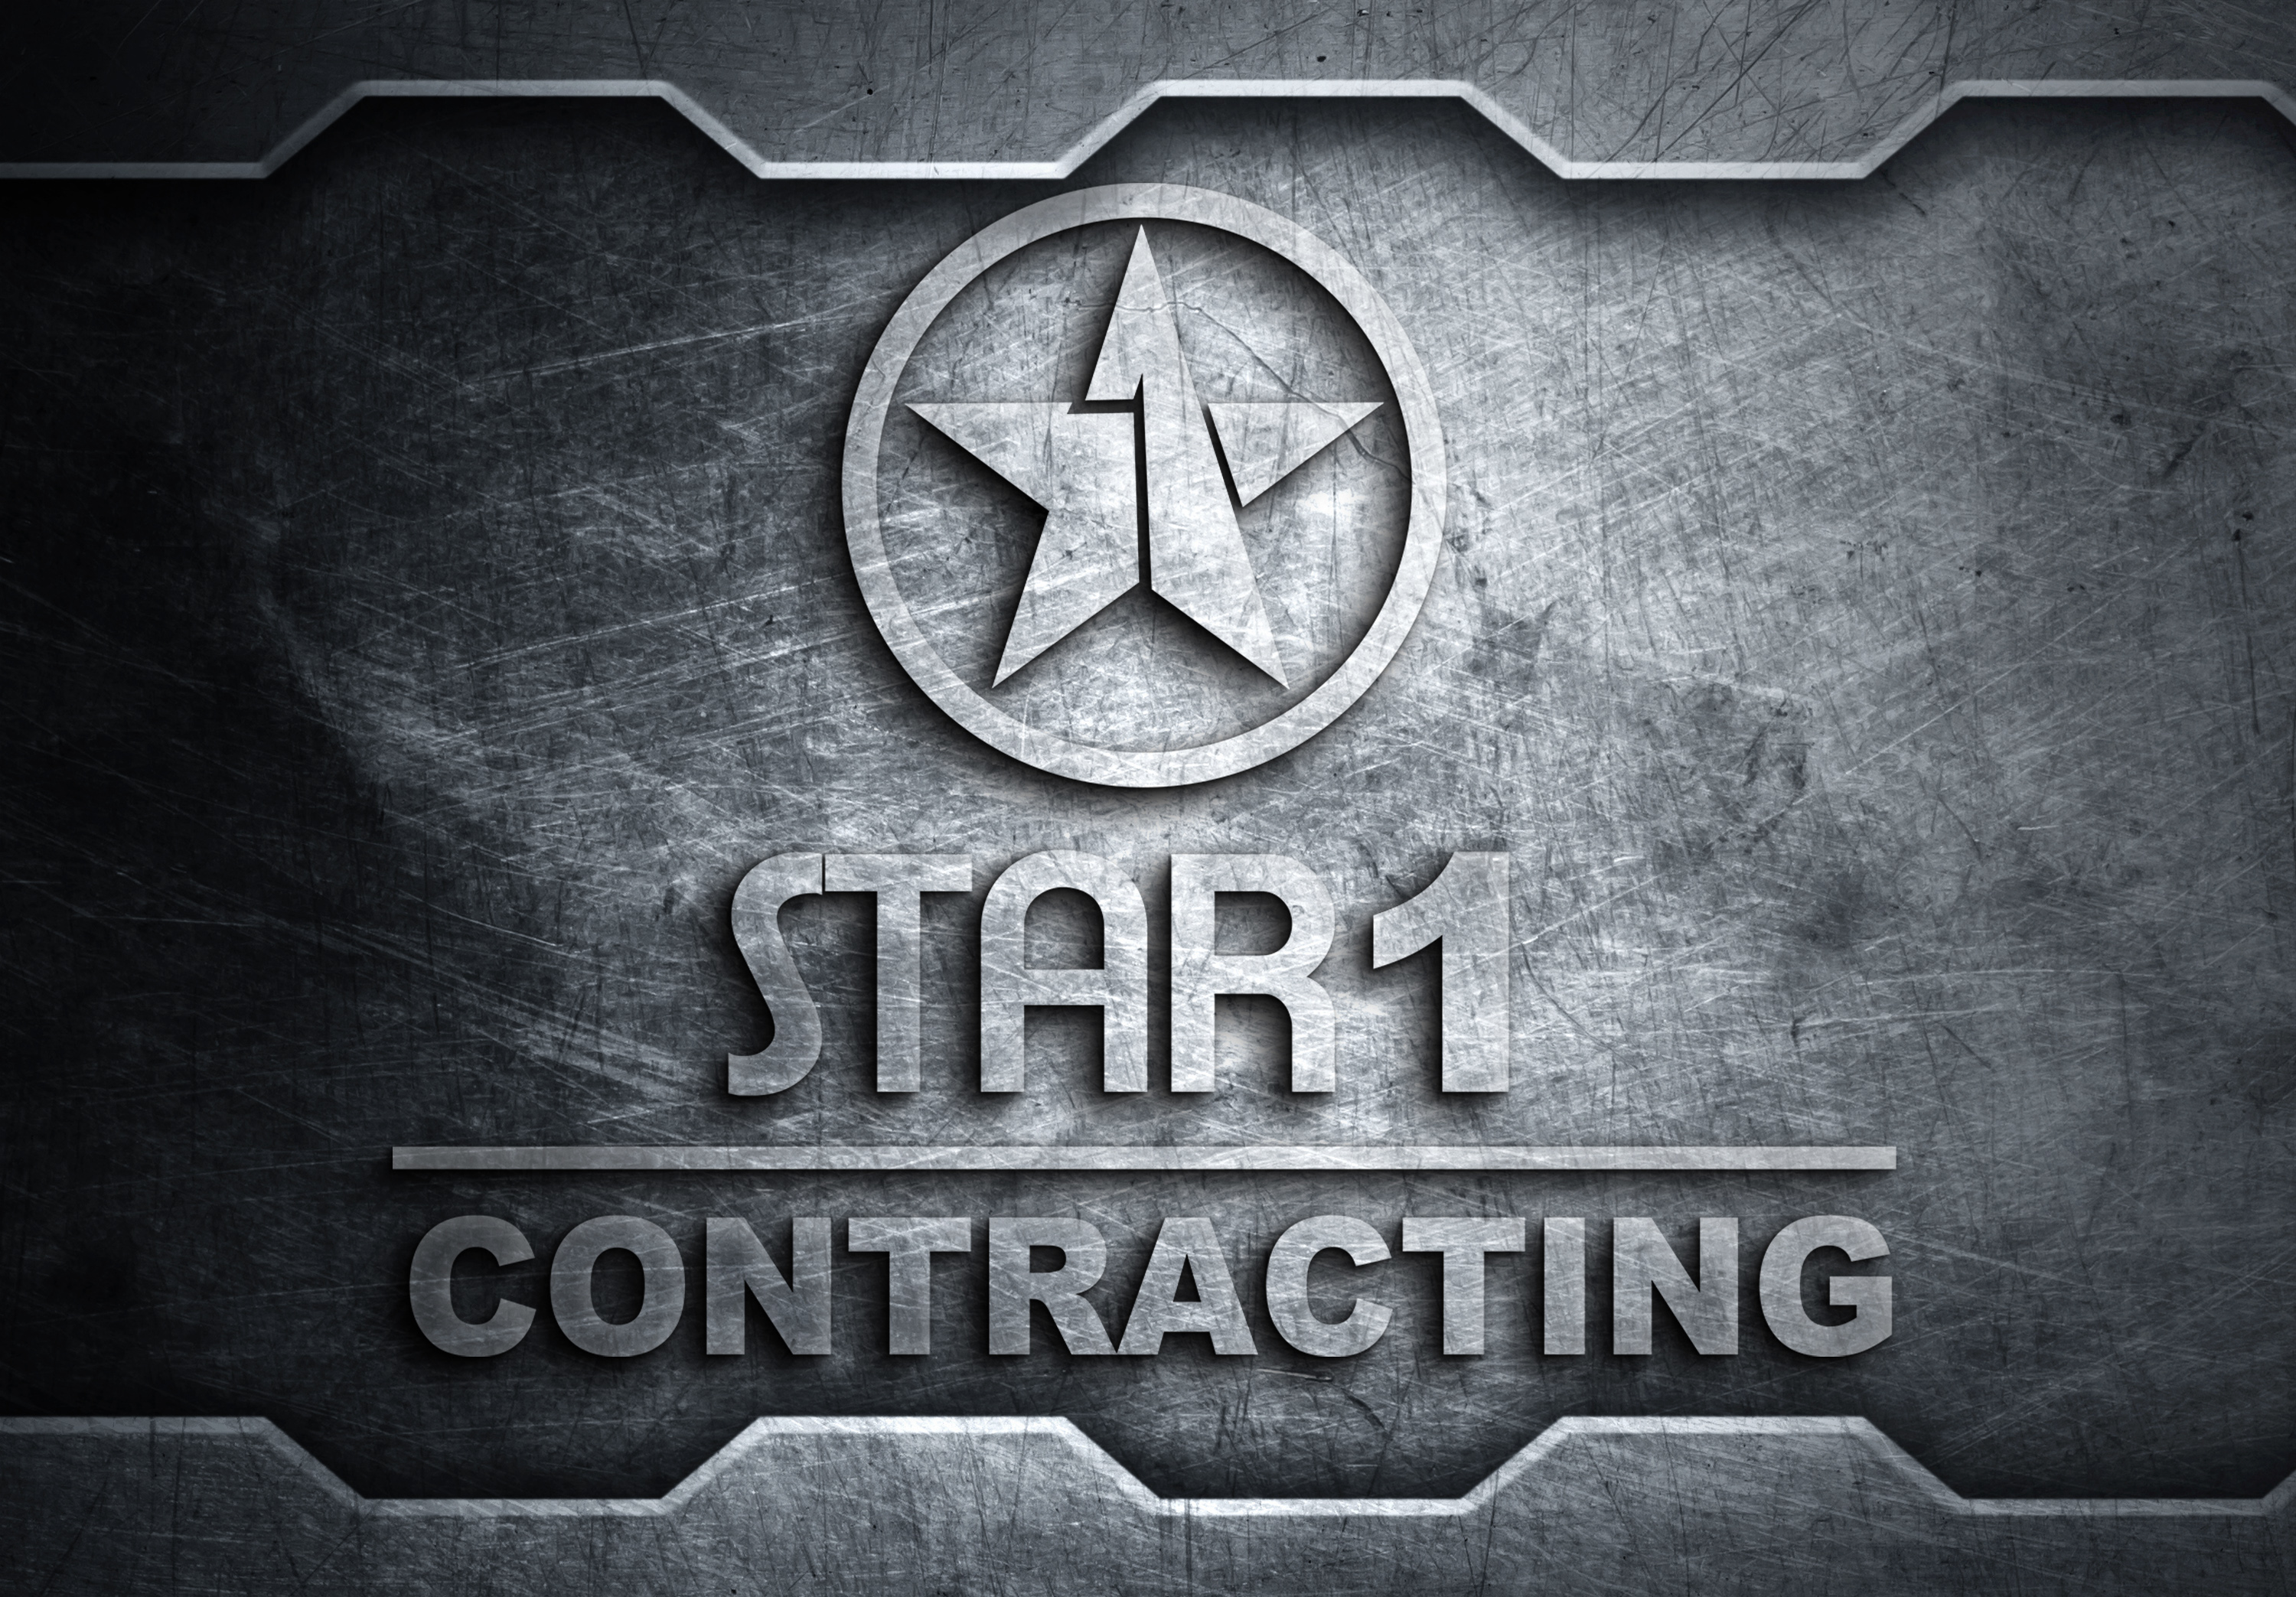 About Us Star1 Contracting